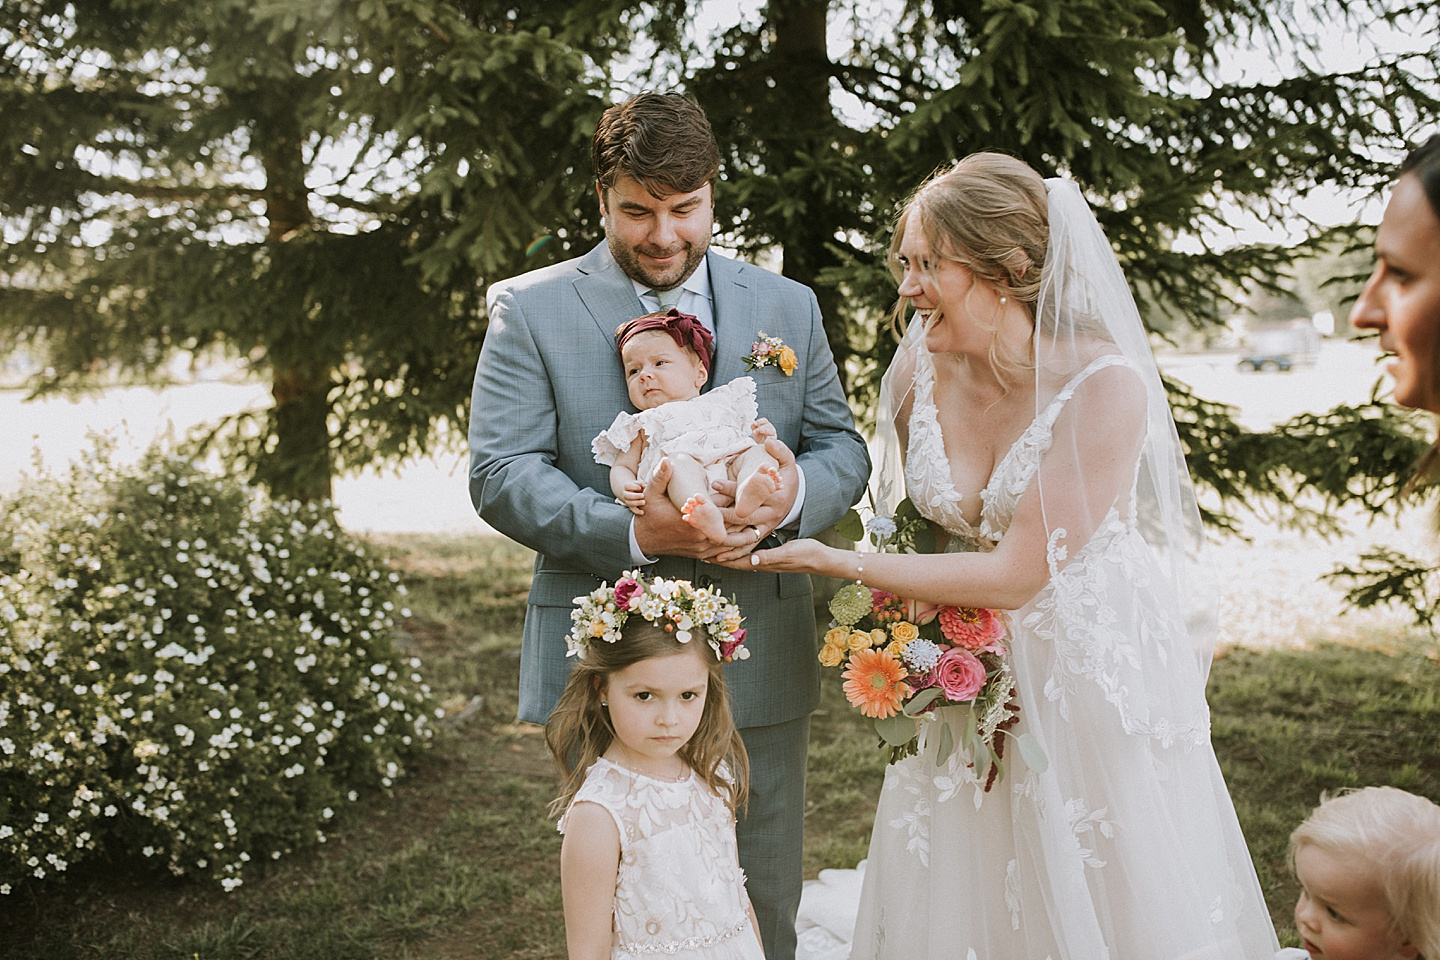 Bride and groom portraits with flower girls and kids